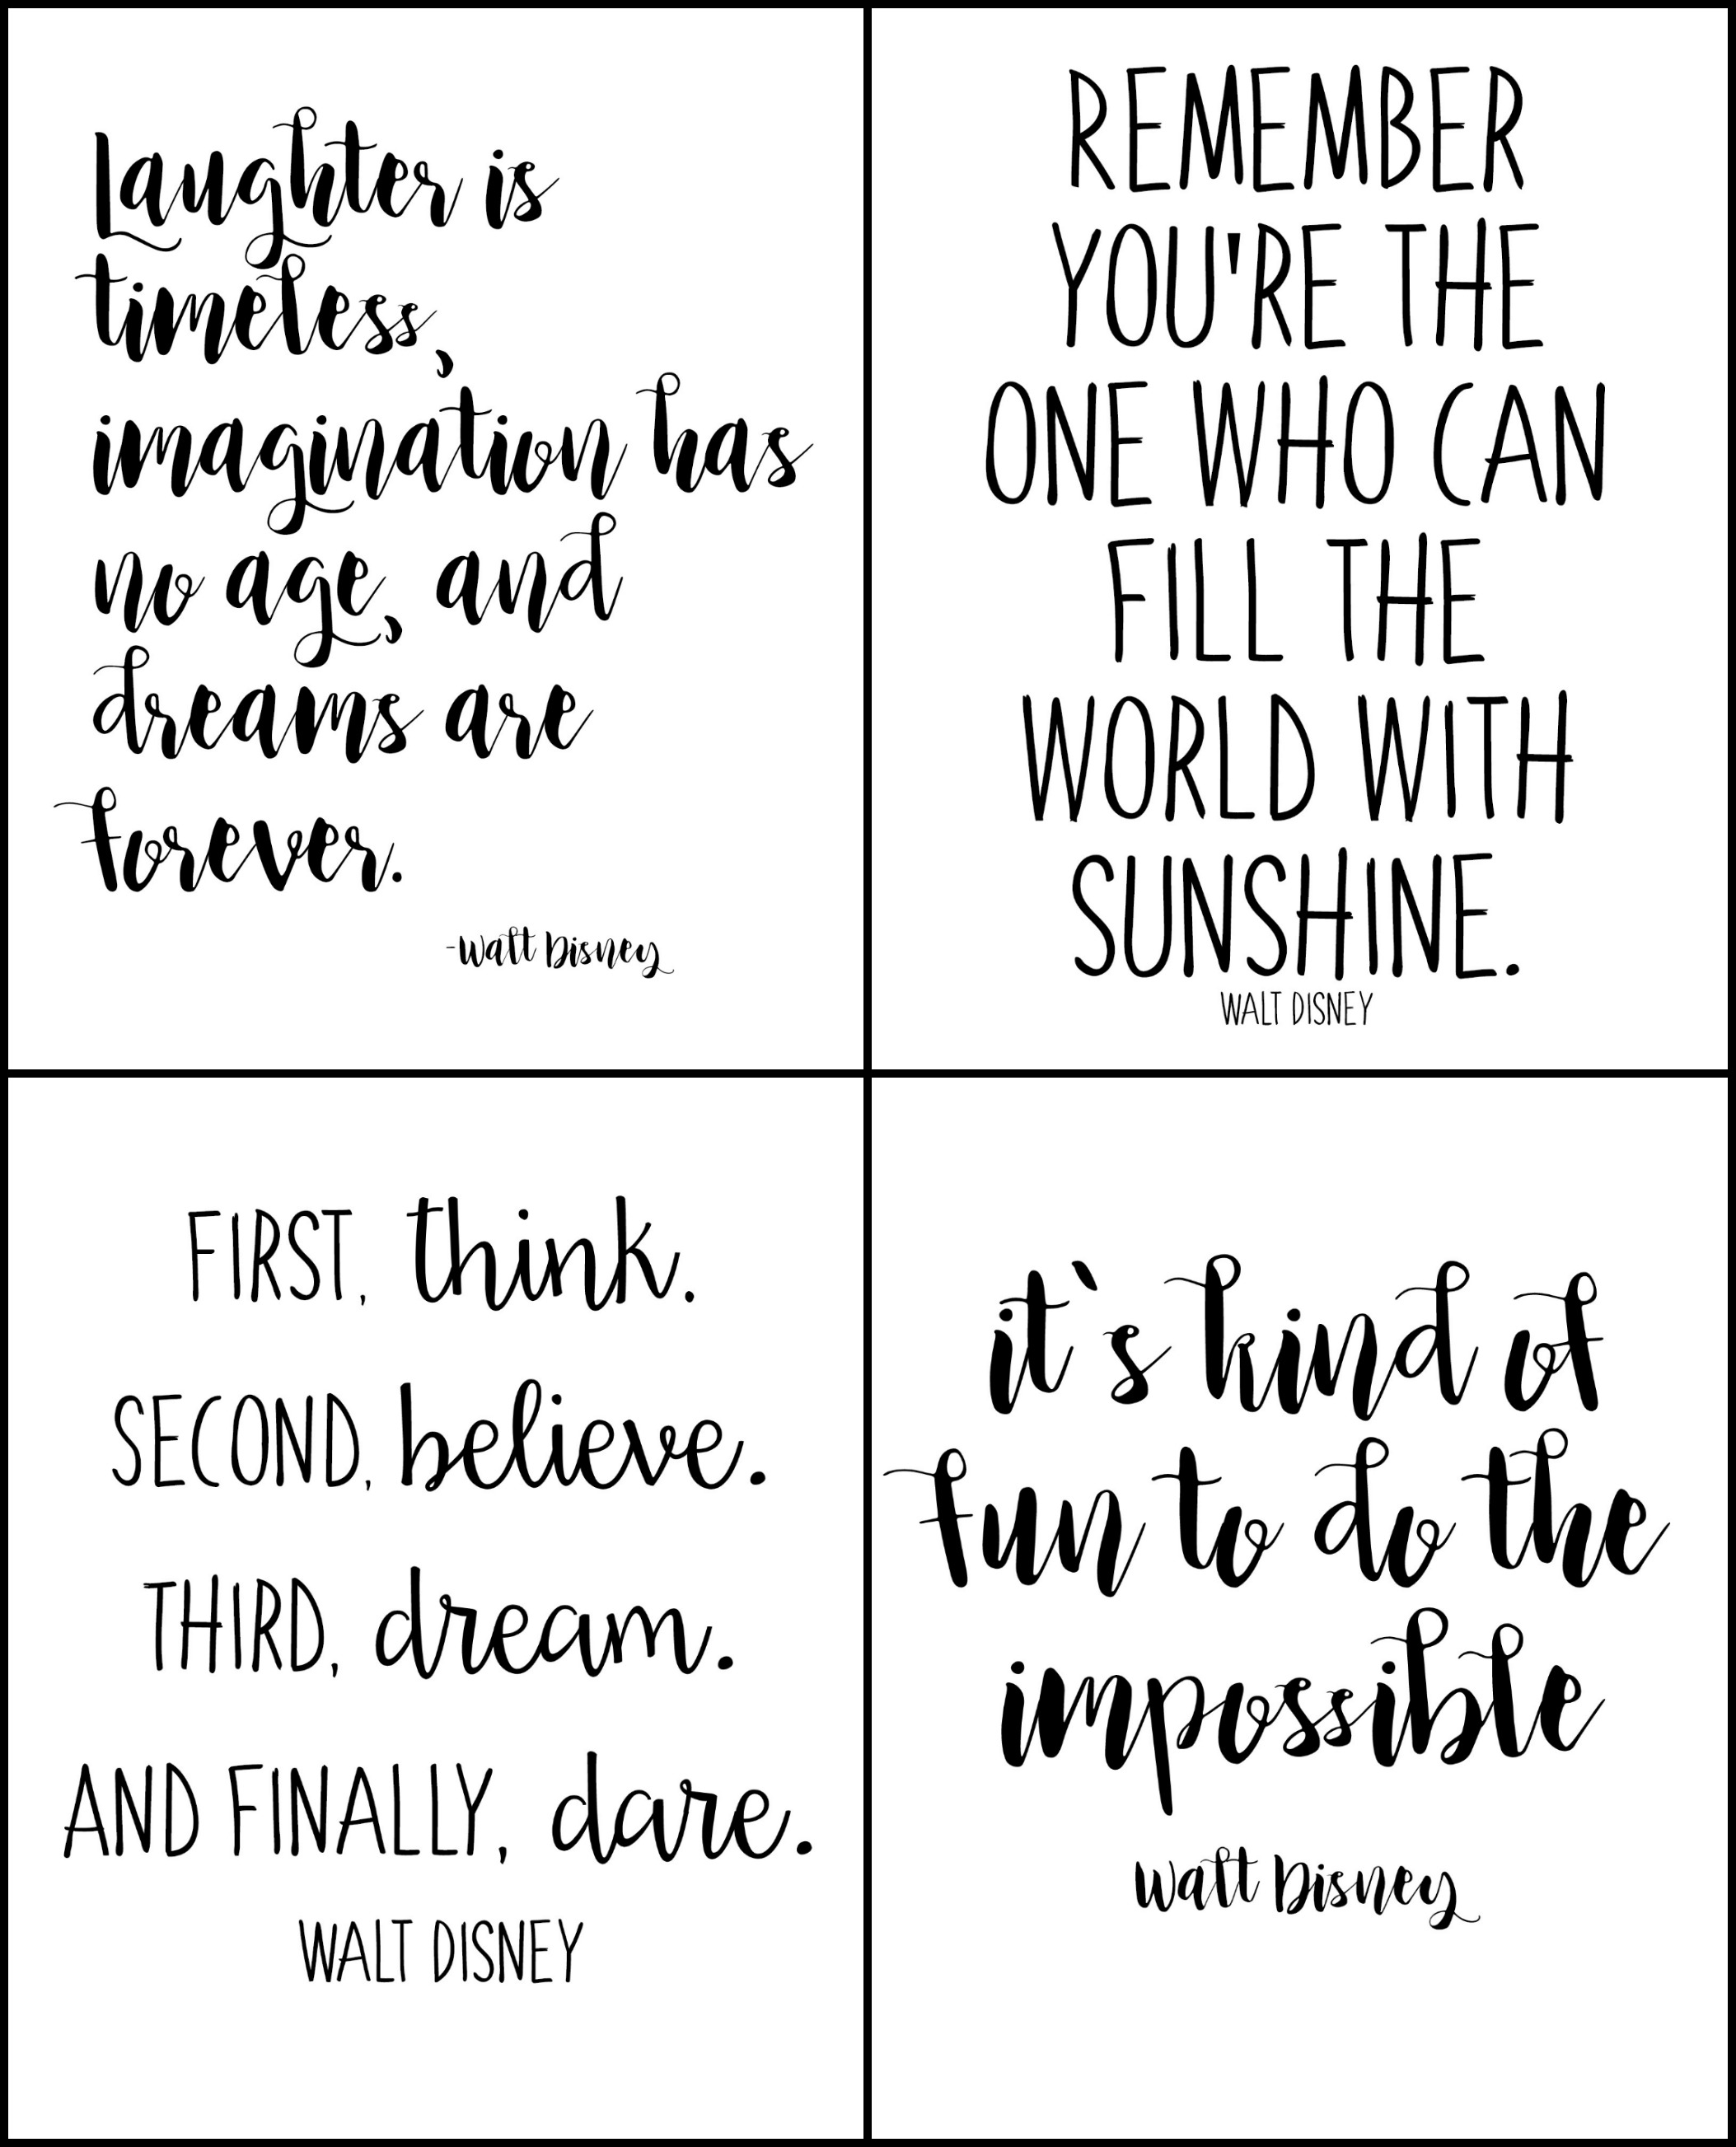 Free Printable Walt Disney Quotes - Moms Without Answers